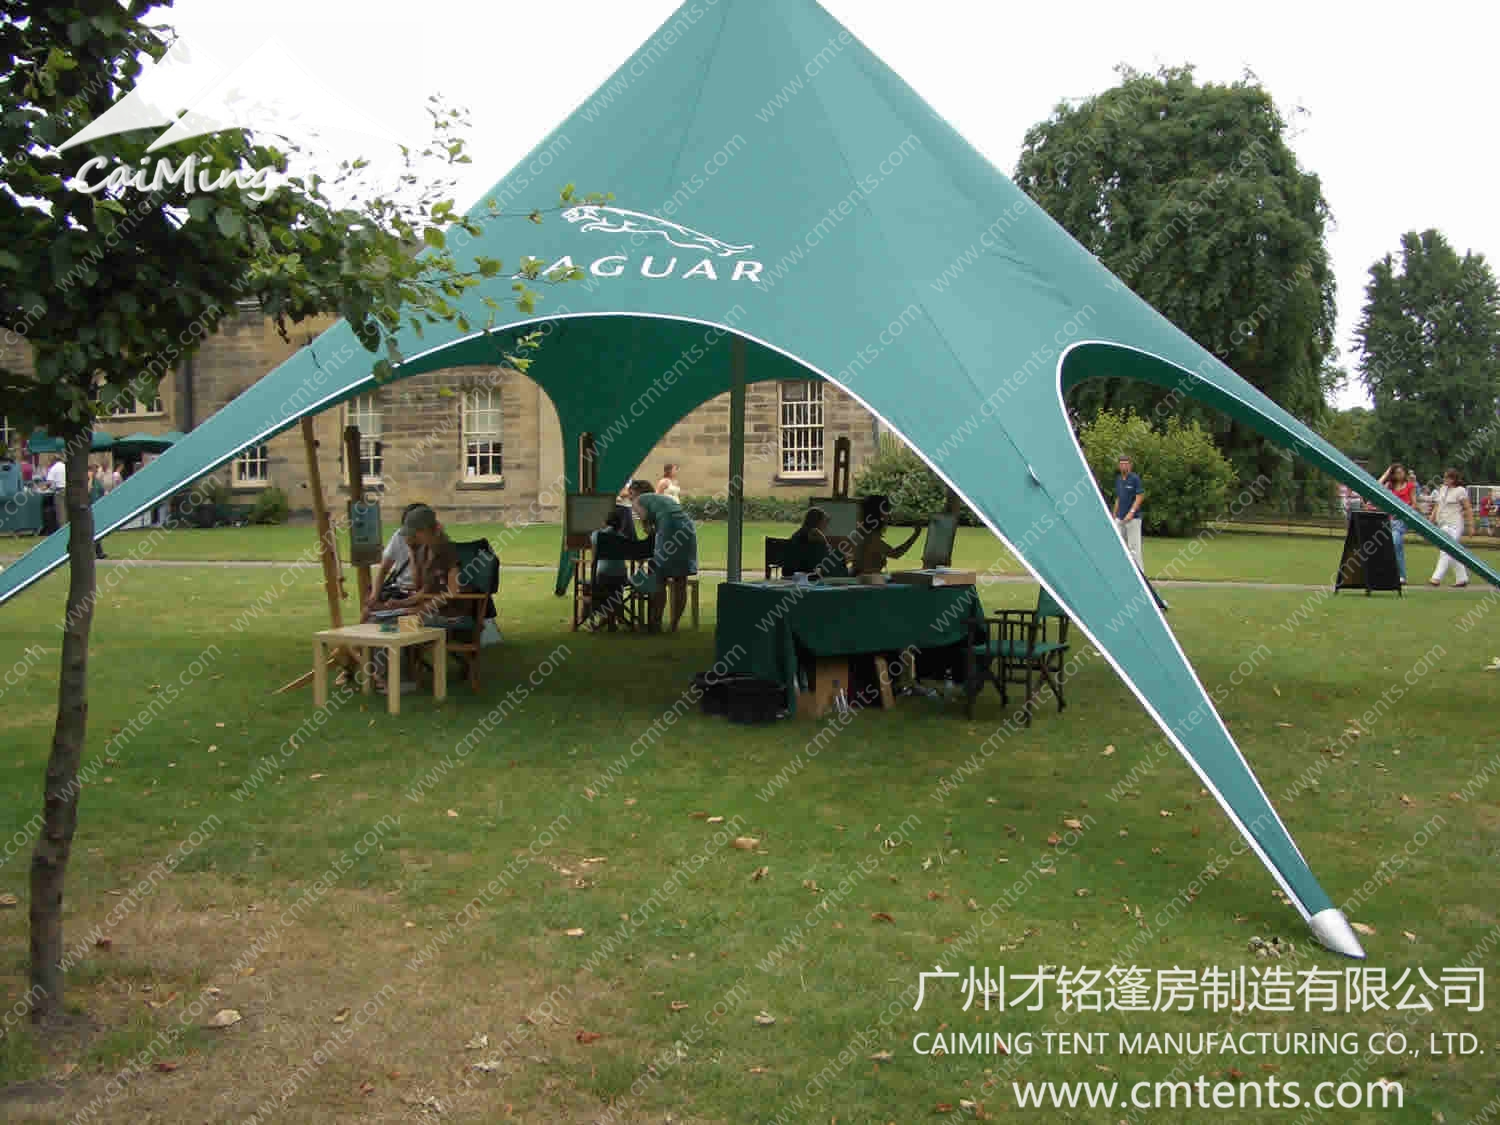 CaiMing Star Tents